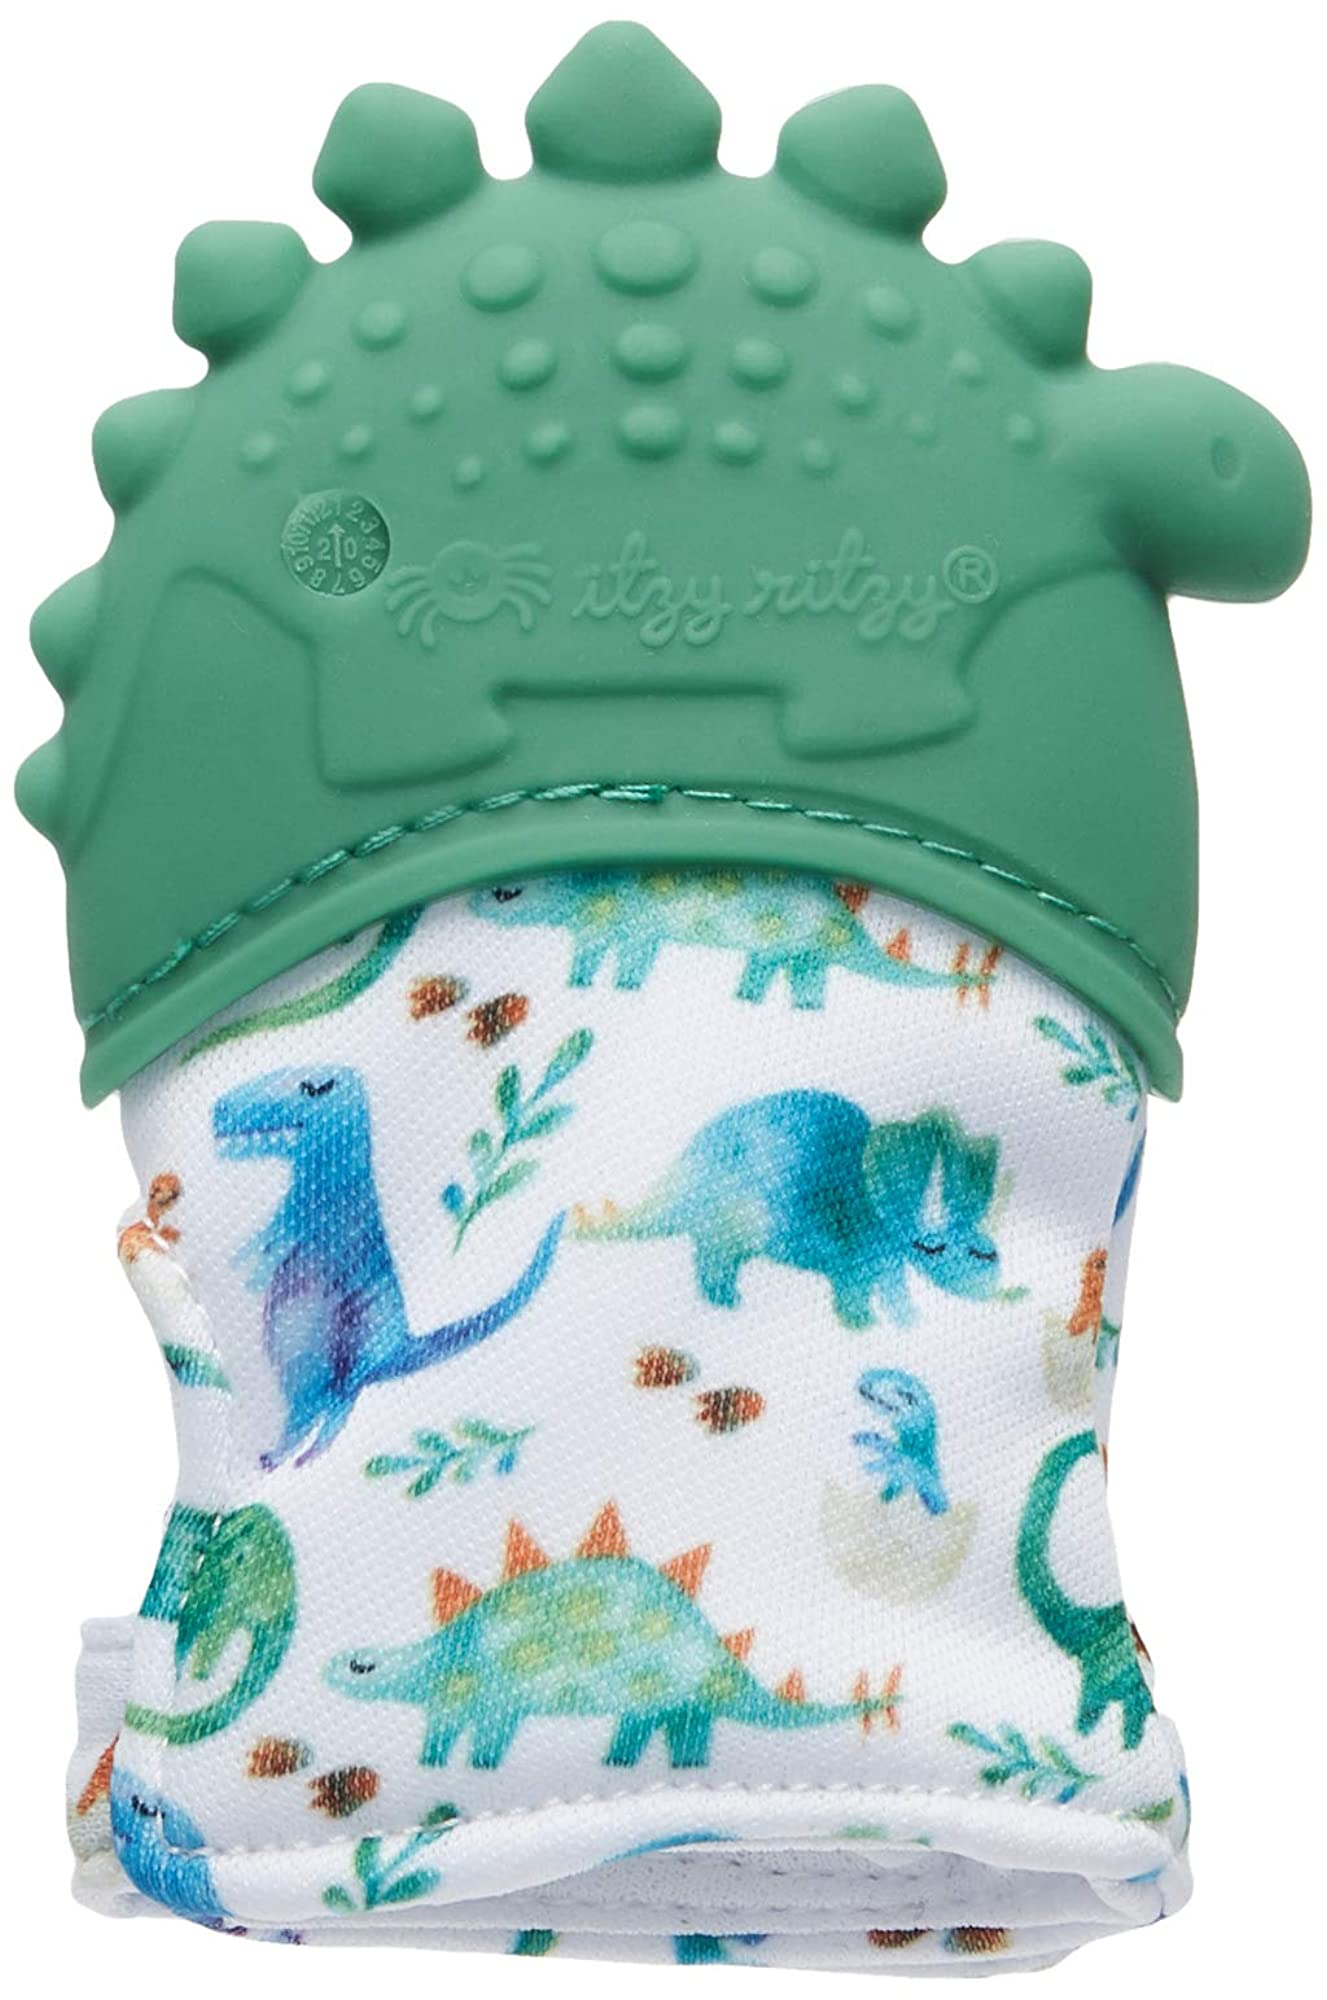 Silicone Teething Mitt ?? Soothing Infant Teething Mitten With Adjustable Strap